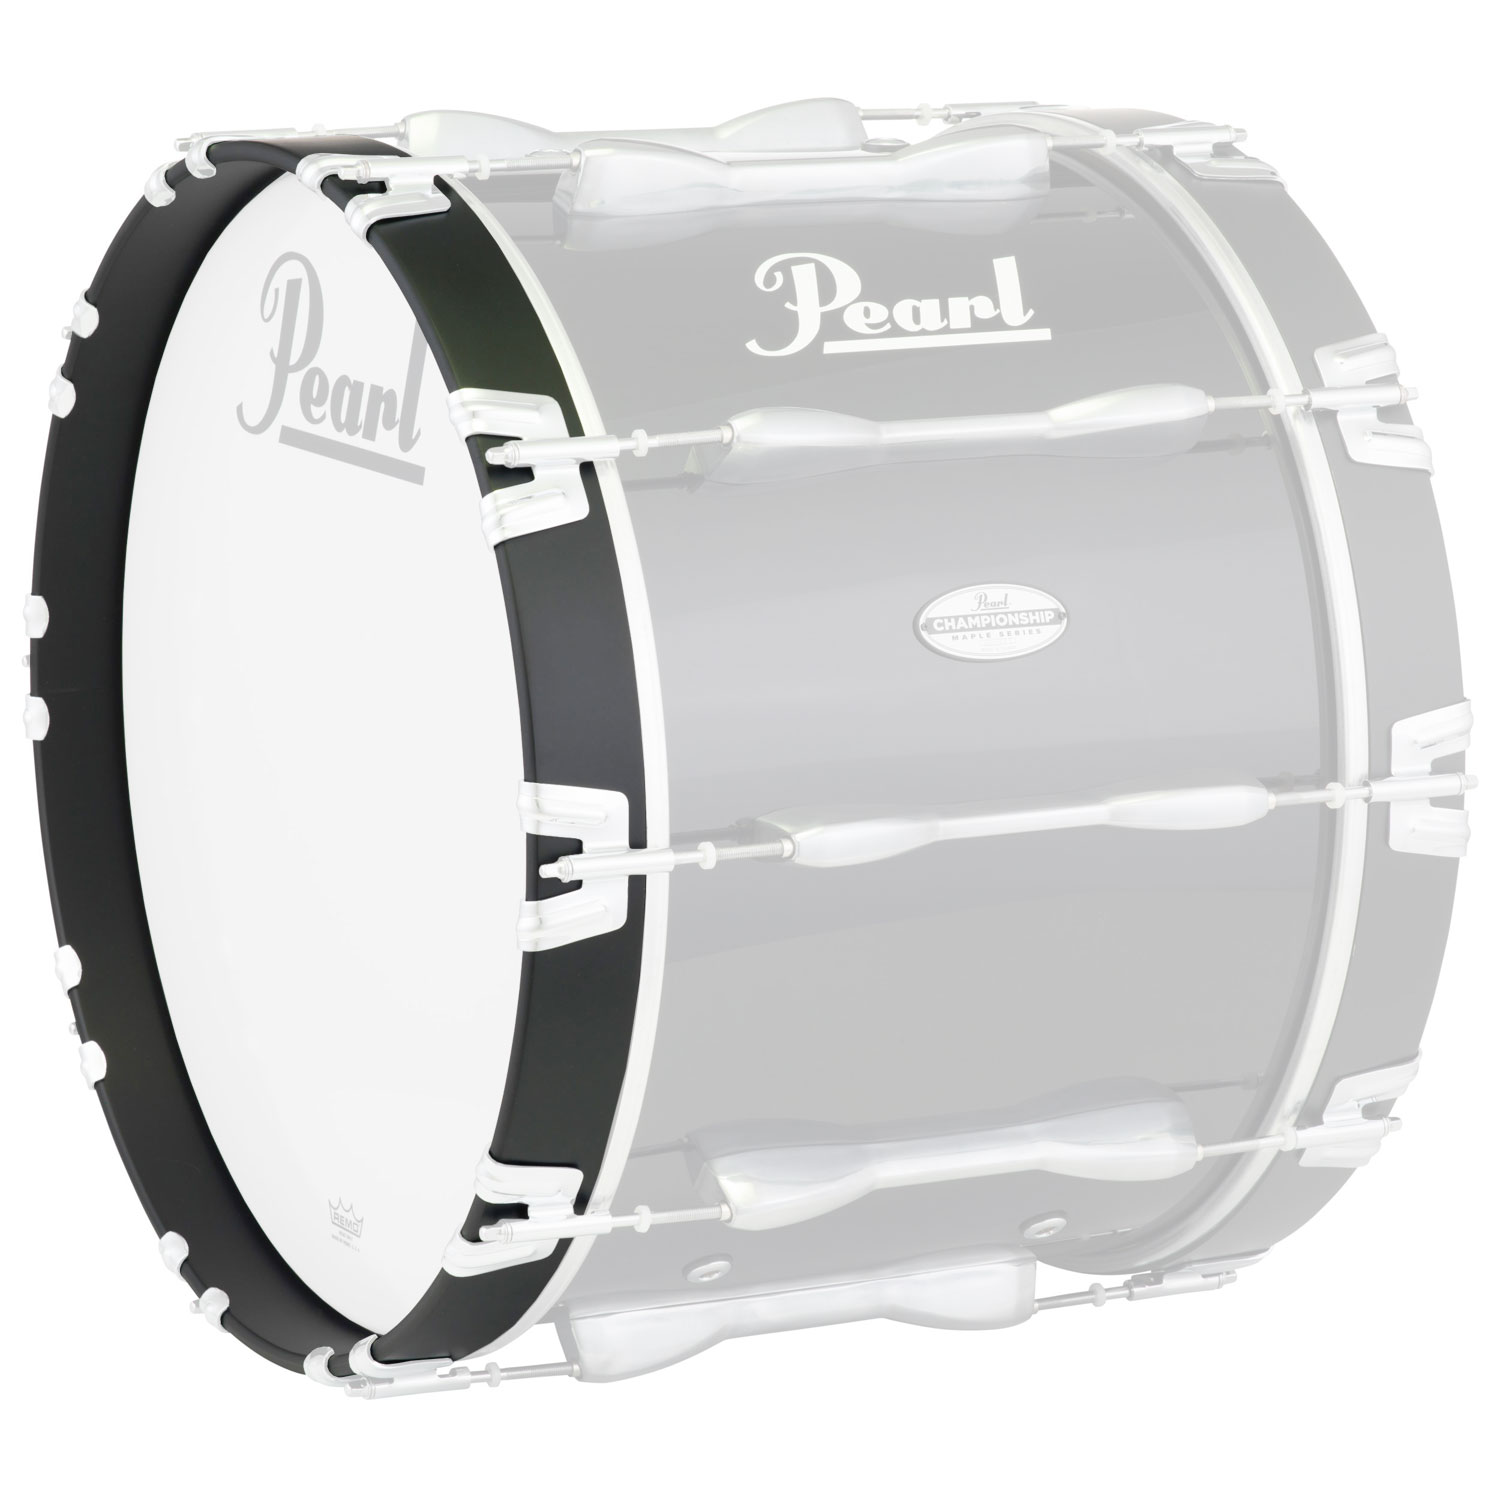 "Pearl 32"" Championship Bass Hoop, Gloss Black, 2"" Wide"